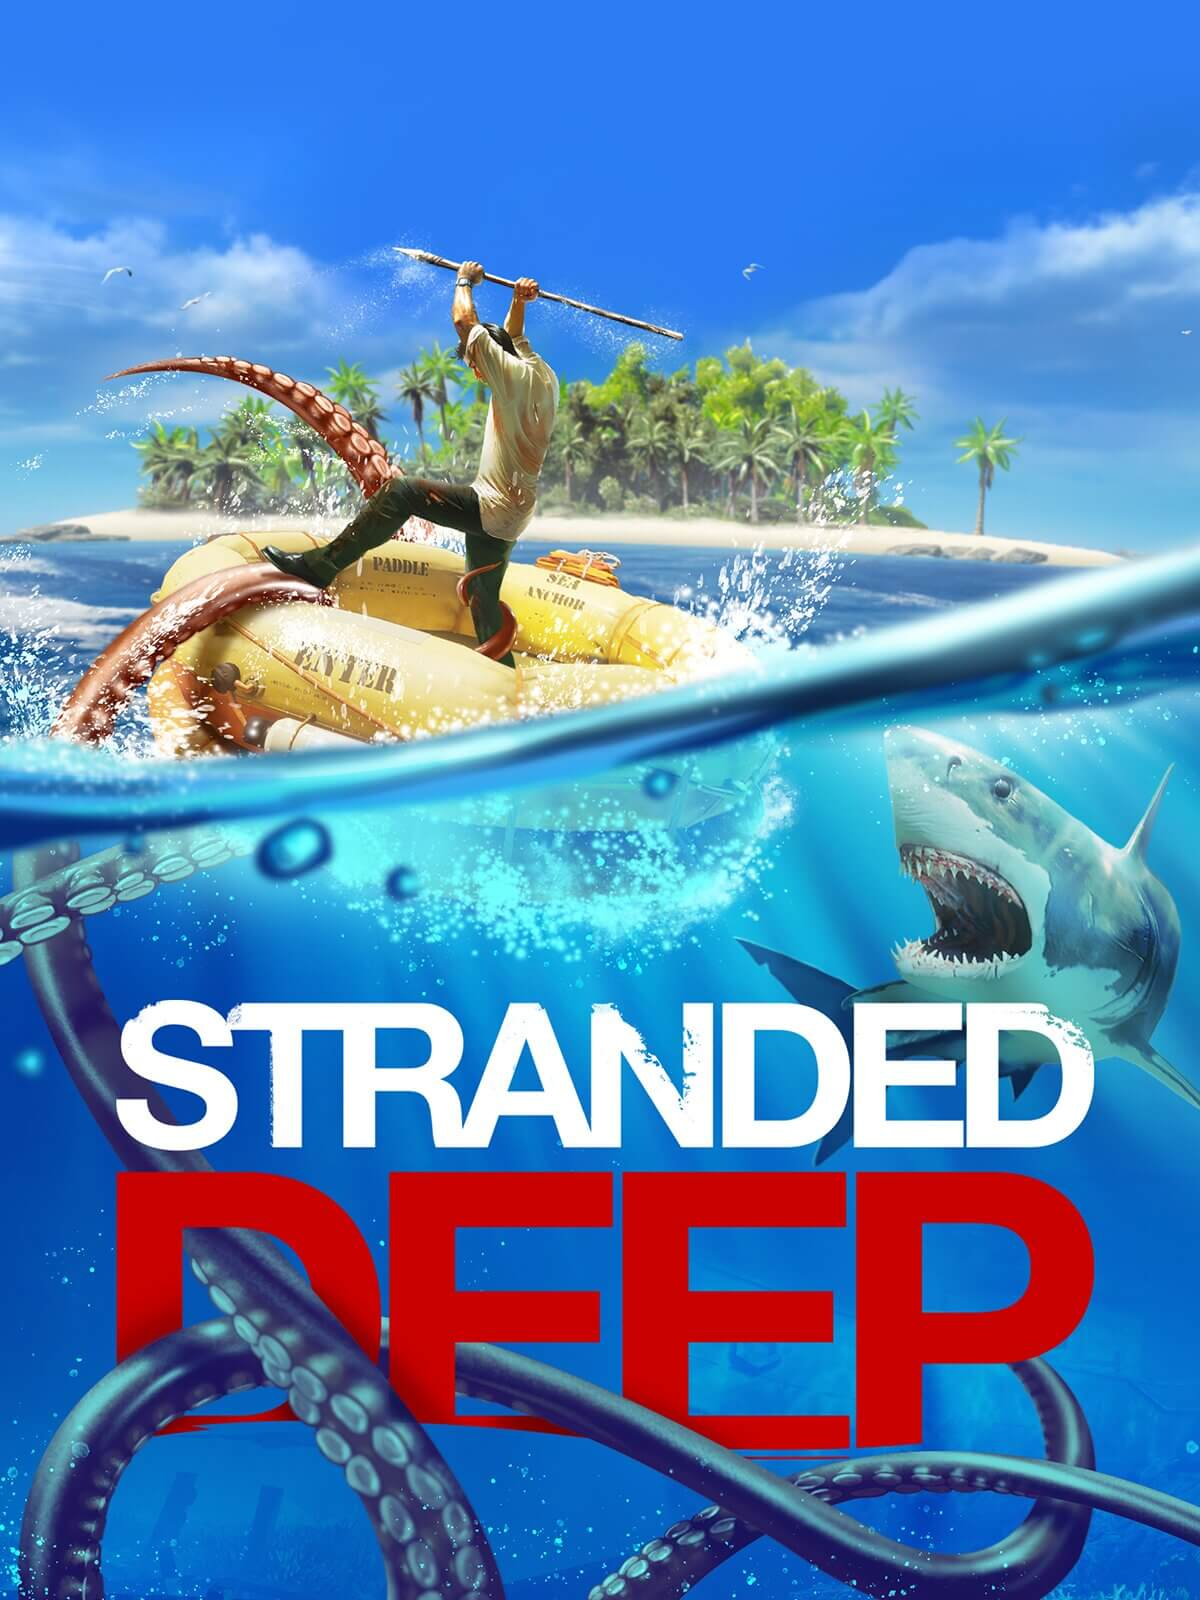 Stranded Deep 1.0 Mac OS Game Latest 2021 Free Download